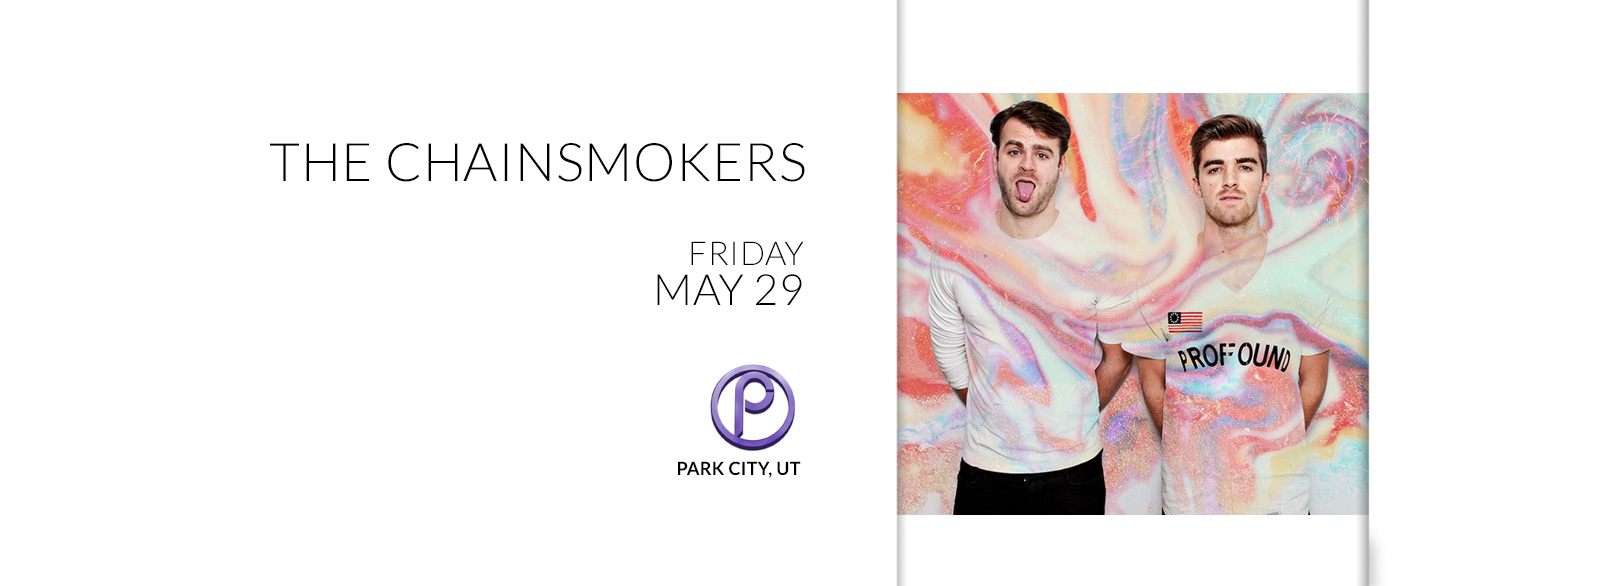 The Chainsmokers @ Park City Live